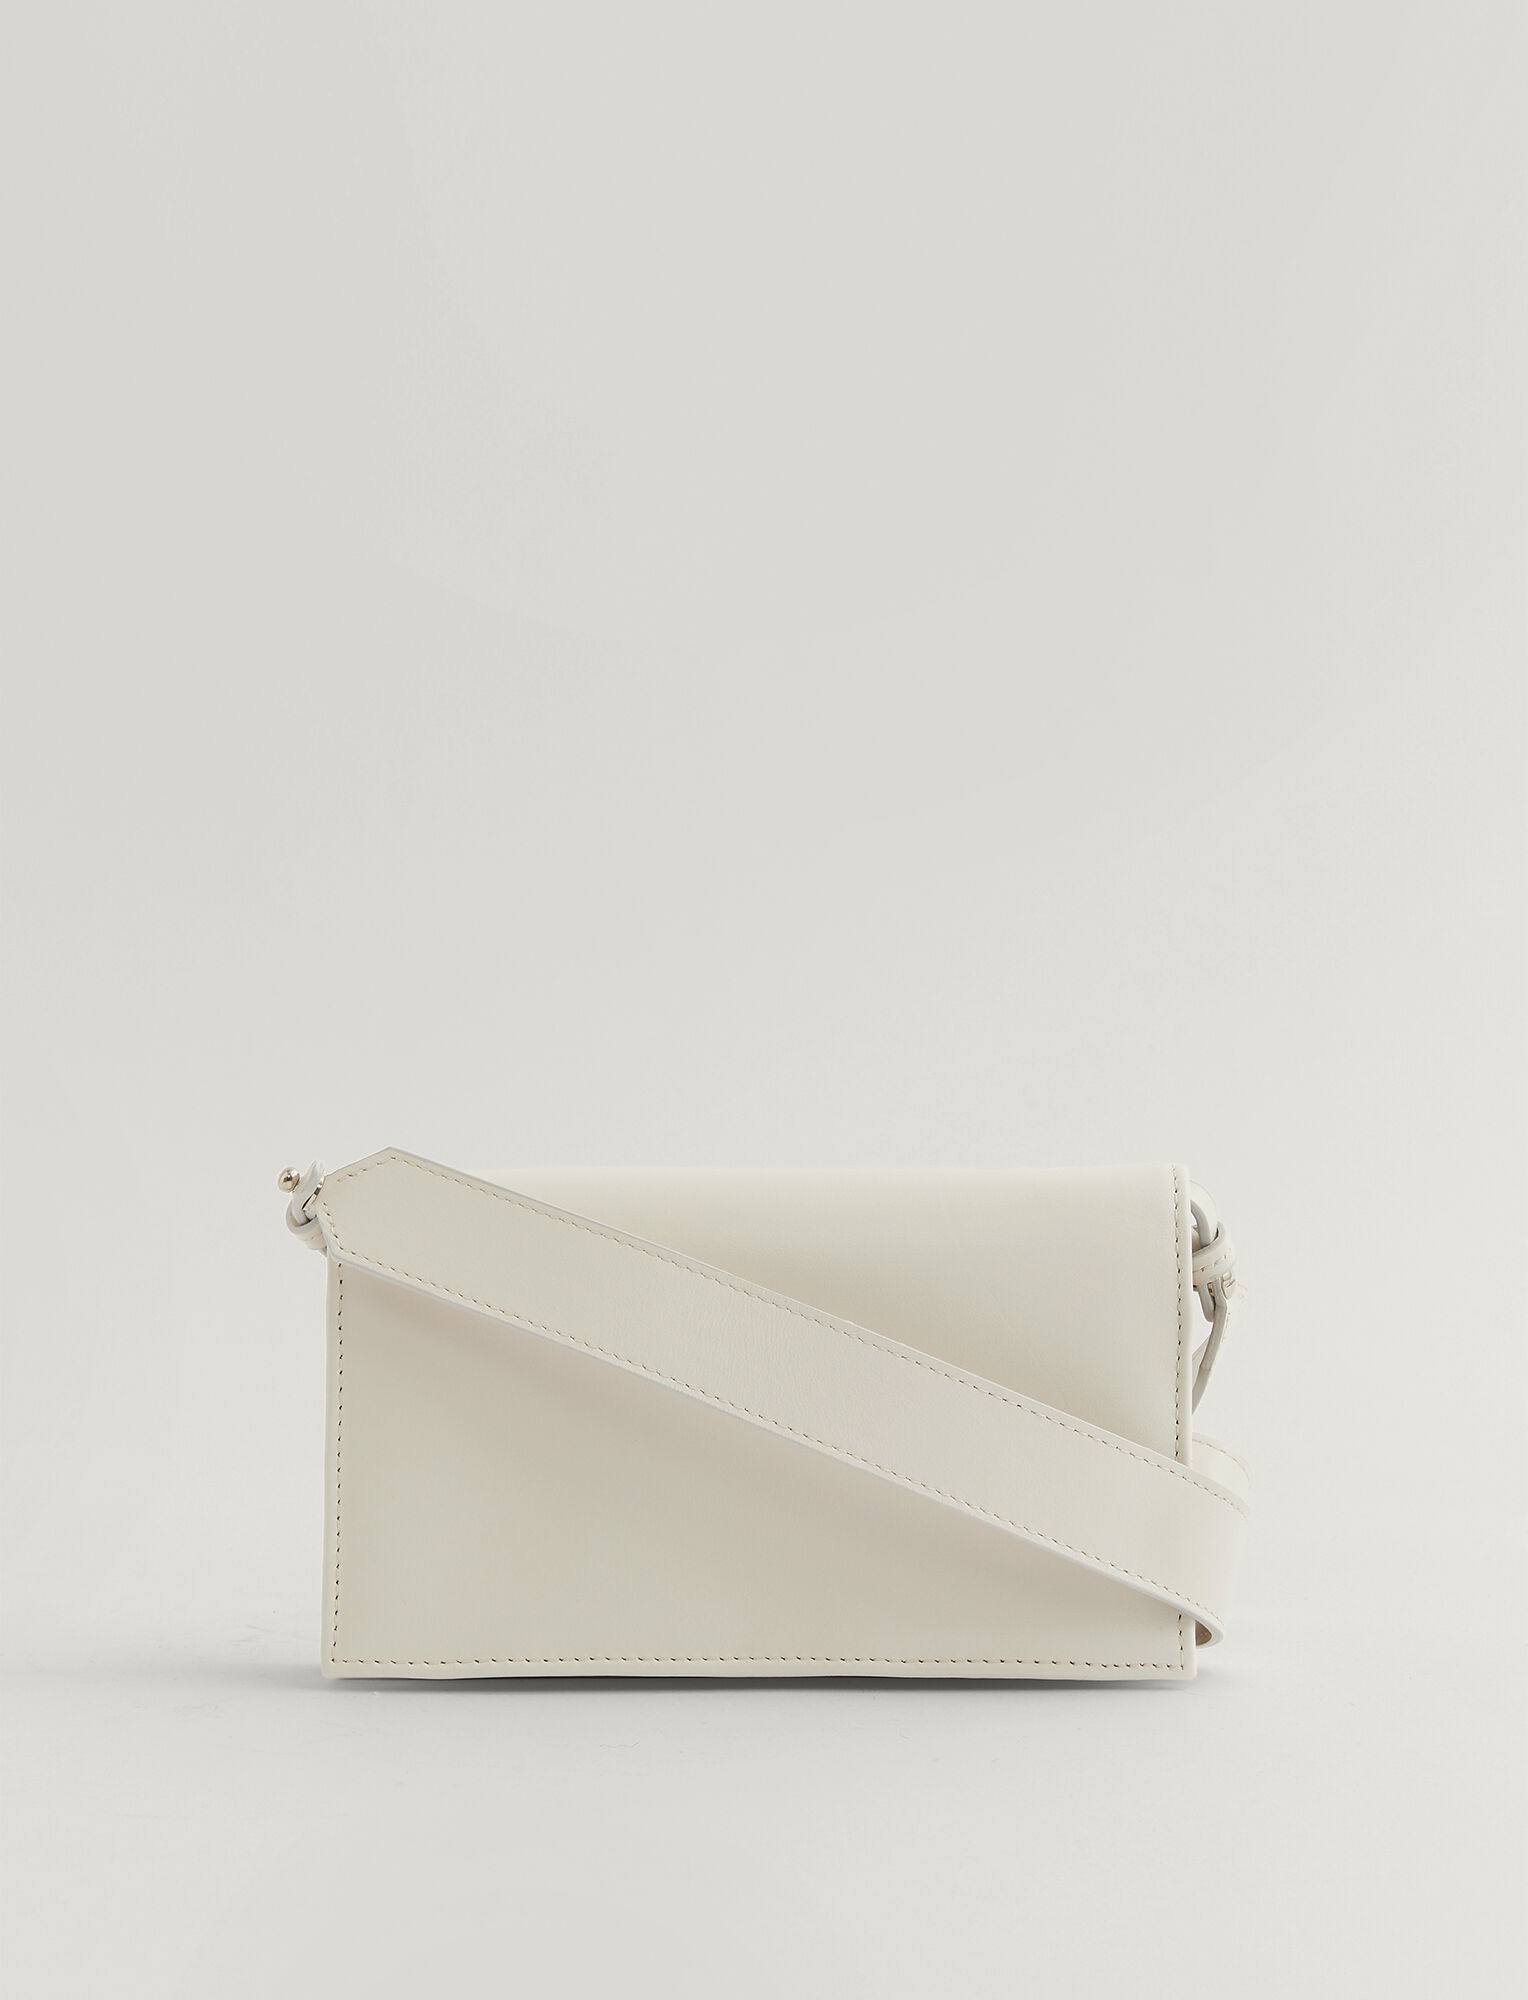 Joseph, Portefeuille Shoulder en cuir, in OFF WHITE